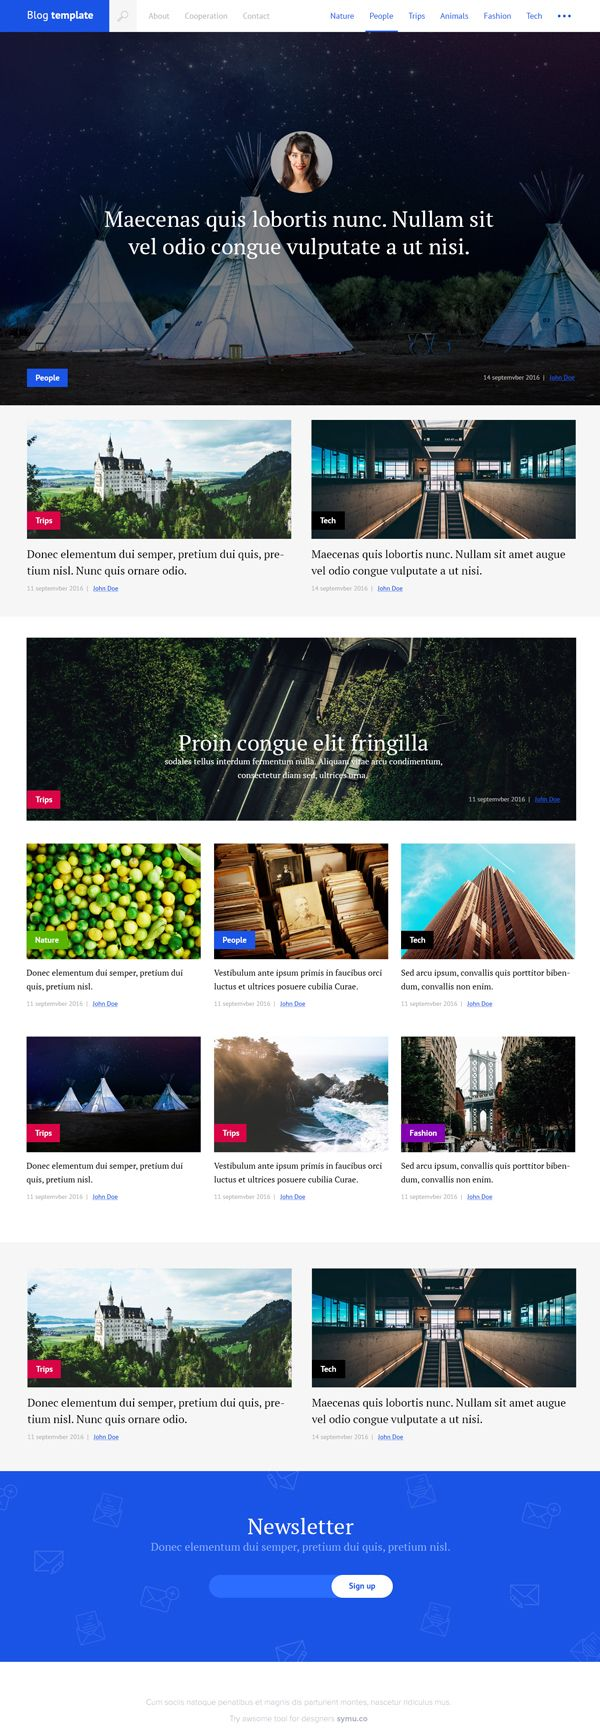 Free Blog PSD Template #freebies #webtemplates #psdtemplates ...